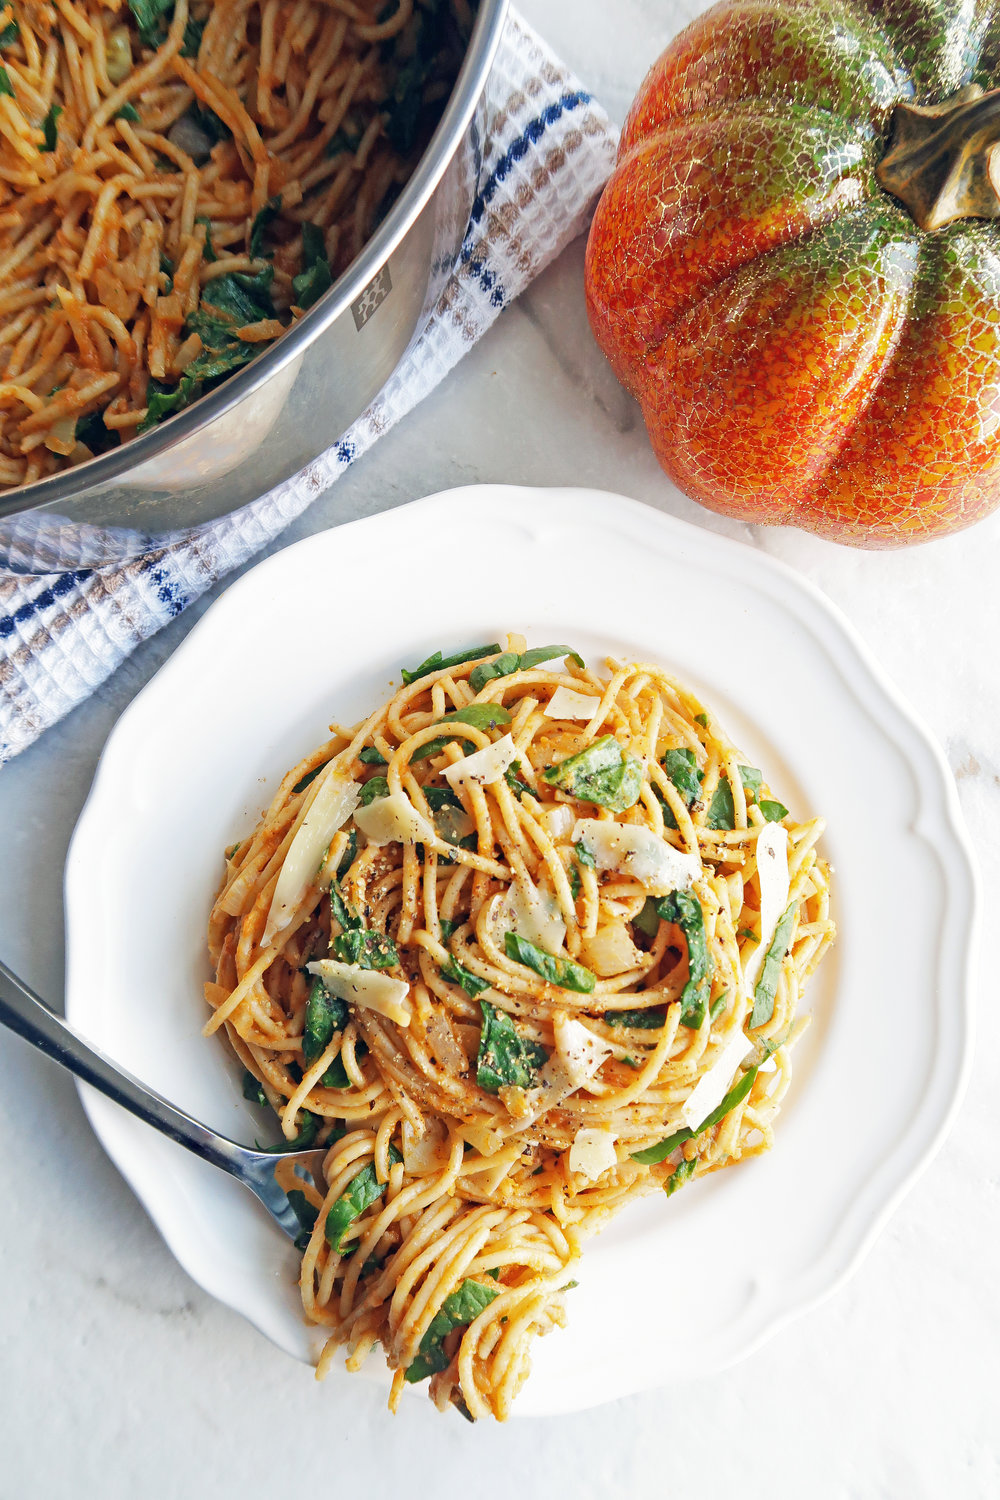 Spaghetti with creamy pumpkin sauce on white plate with more spaghetti in a metal pot behind the plate.